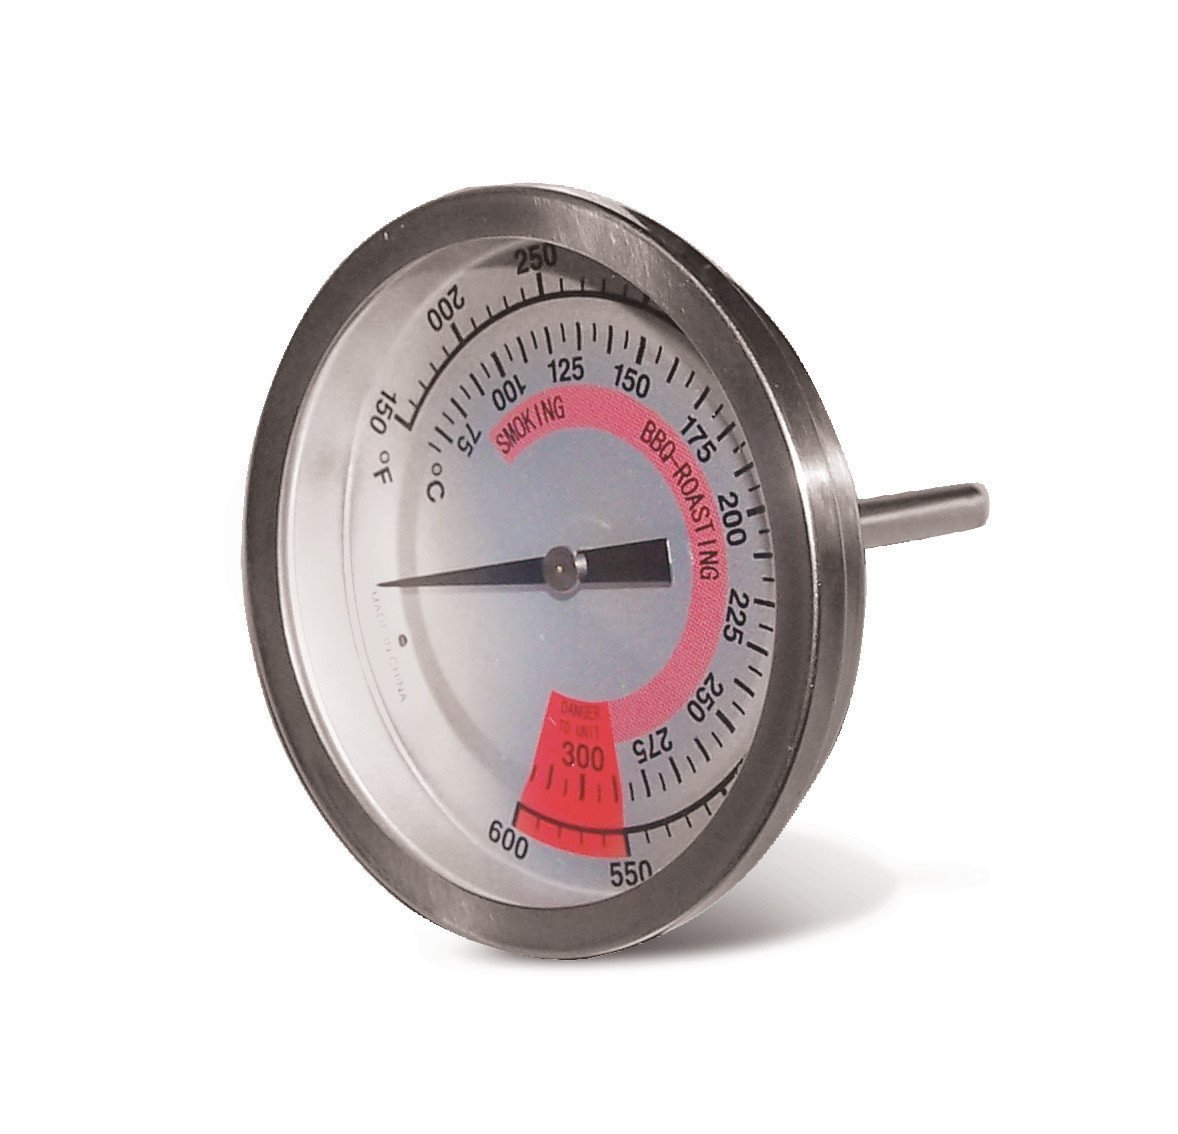 char broil smoker thermometer